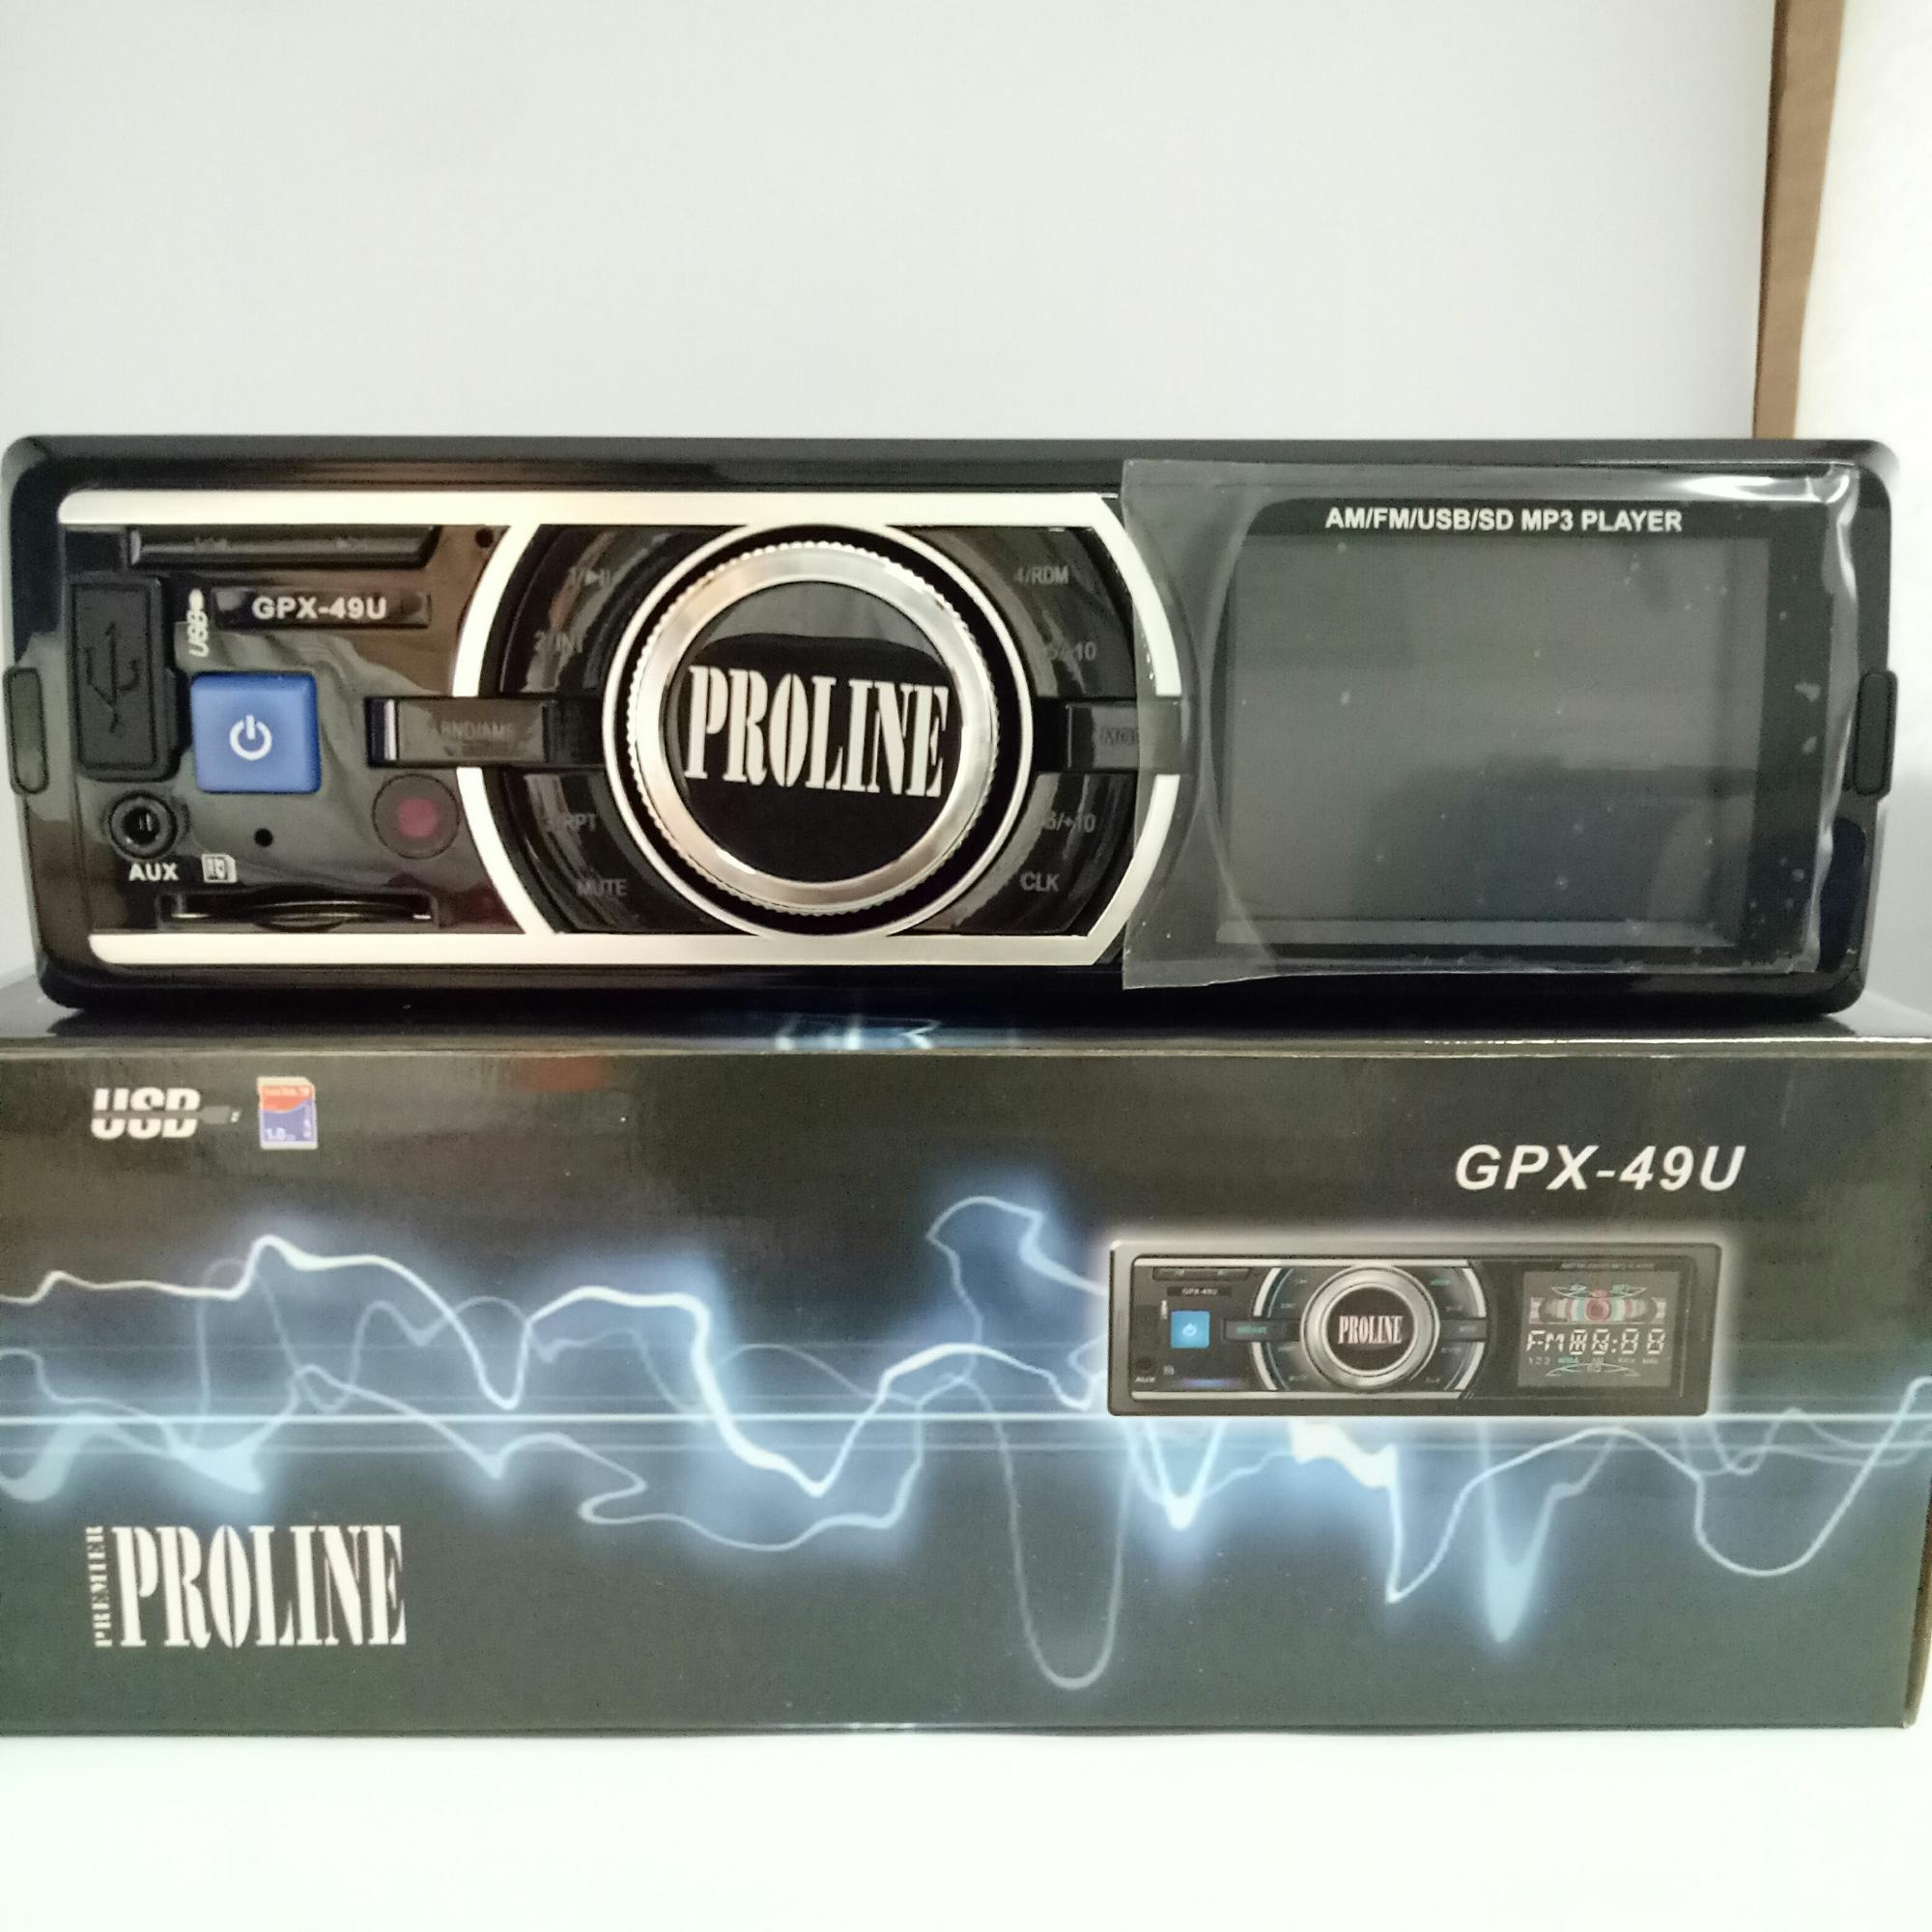 Proline philippines proline price list car stereo sub woofer proline gpx 49u 1200 watts car stereo asfbconference2016 Choice Image